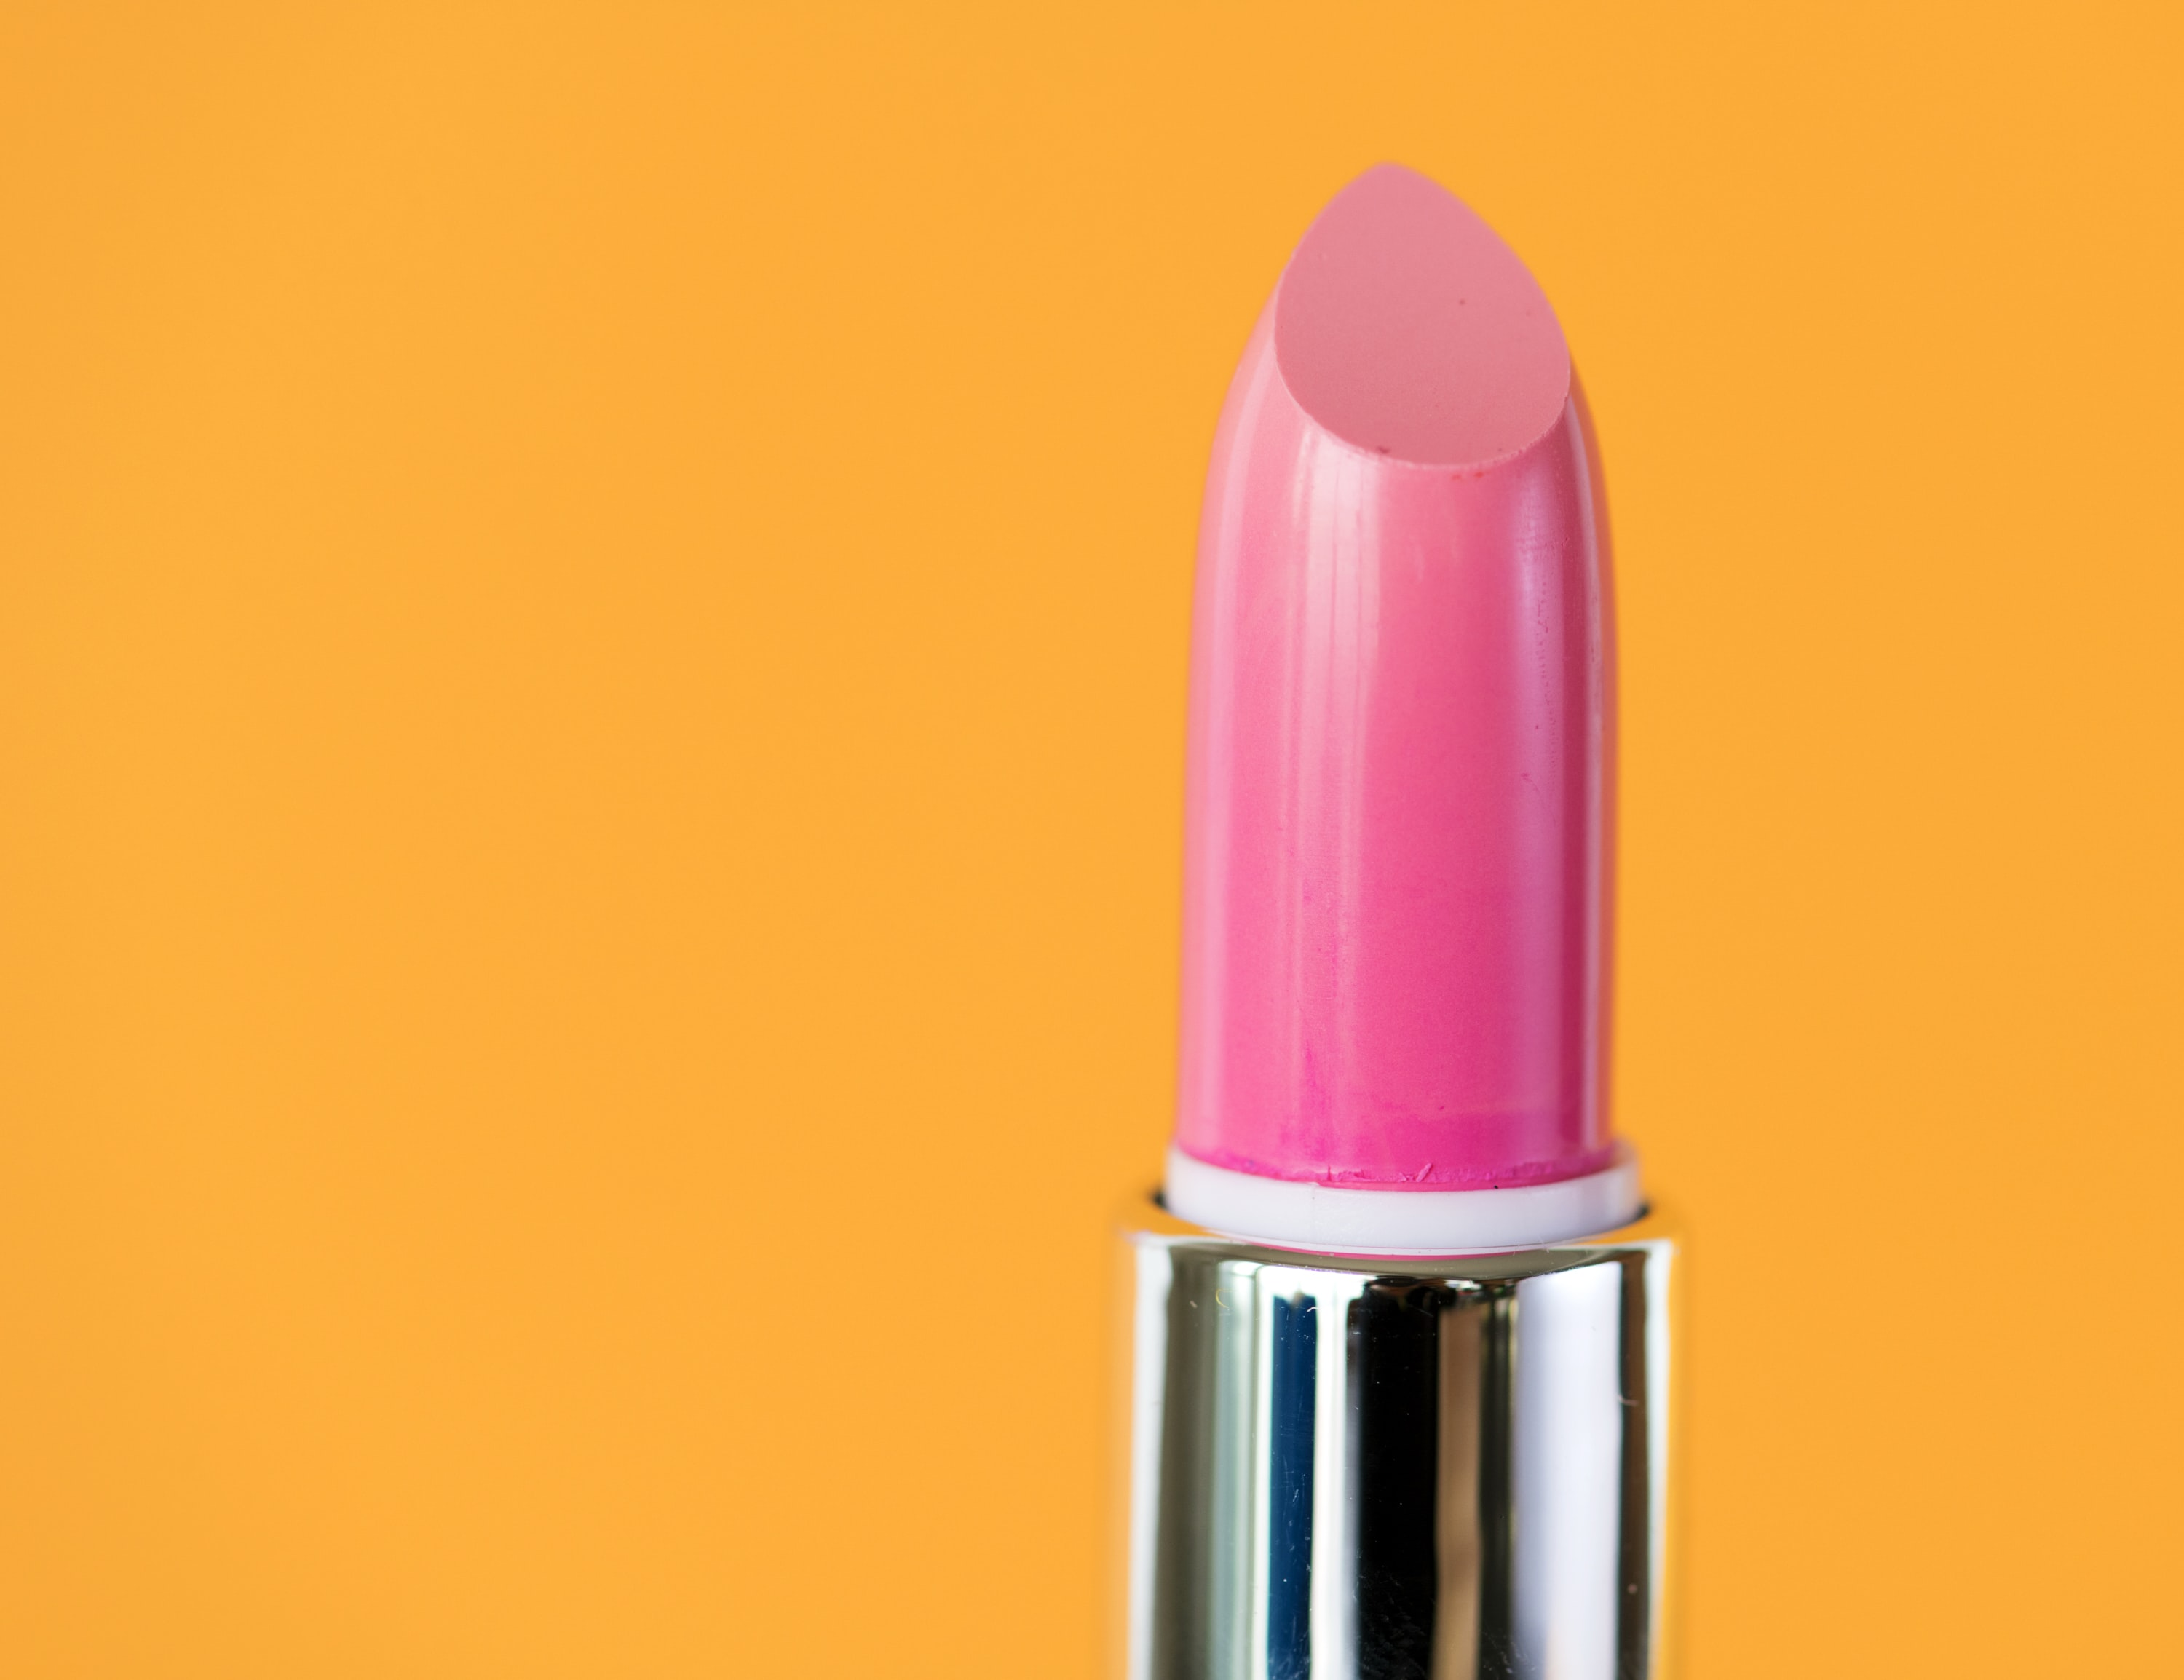 pink lipstick on yellow background